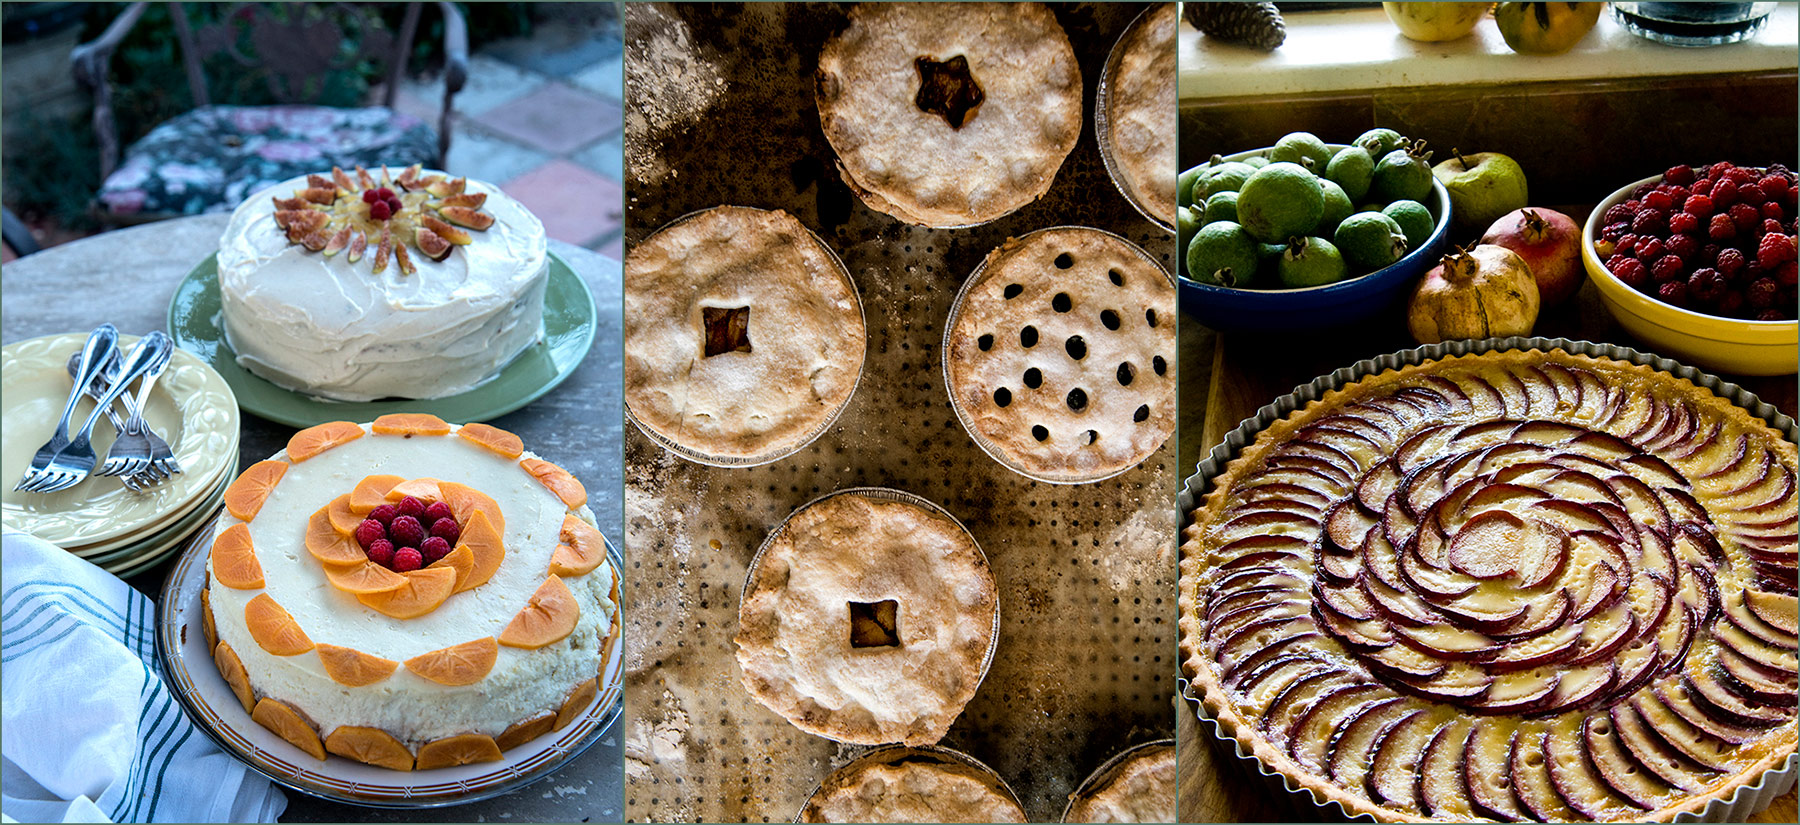 cheese-carrot-cakes-fruit-pies-apple-tart